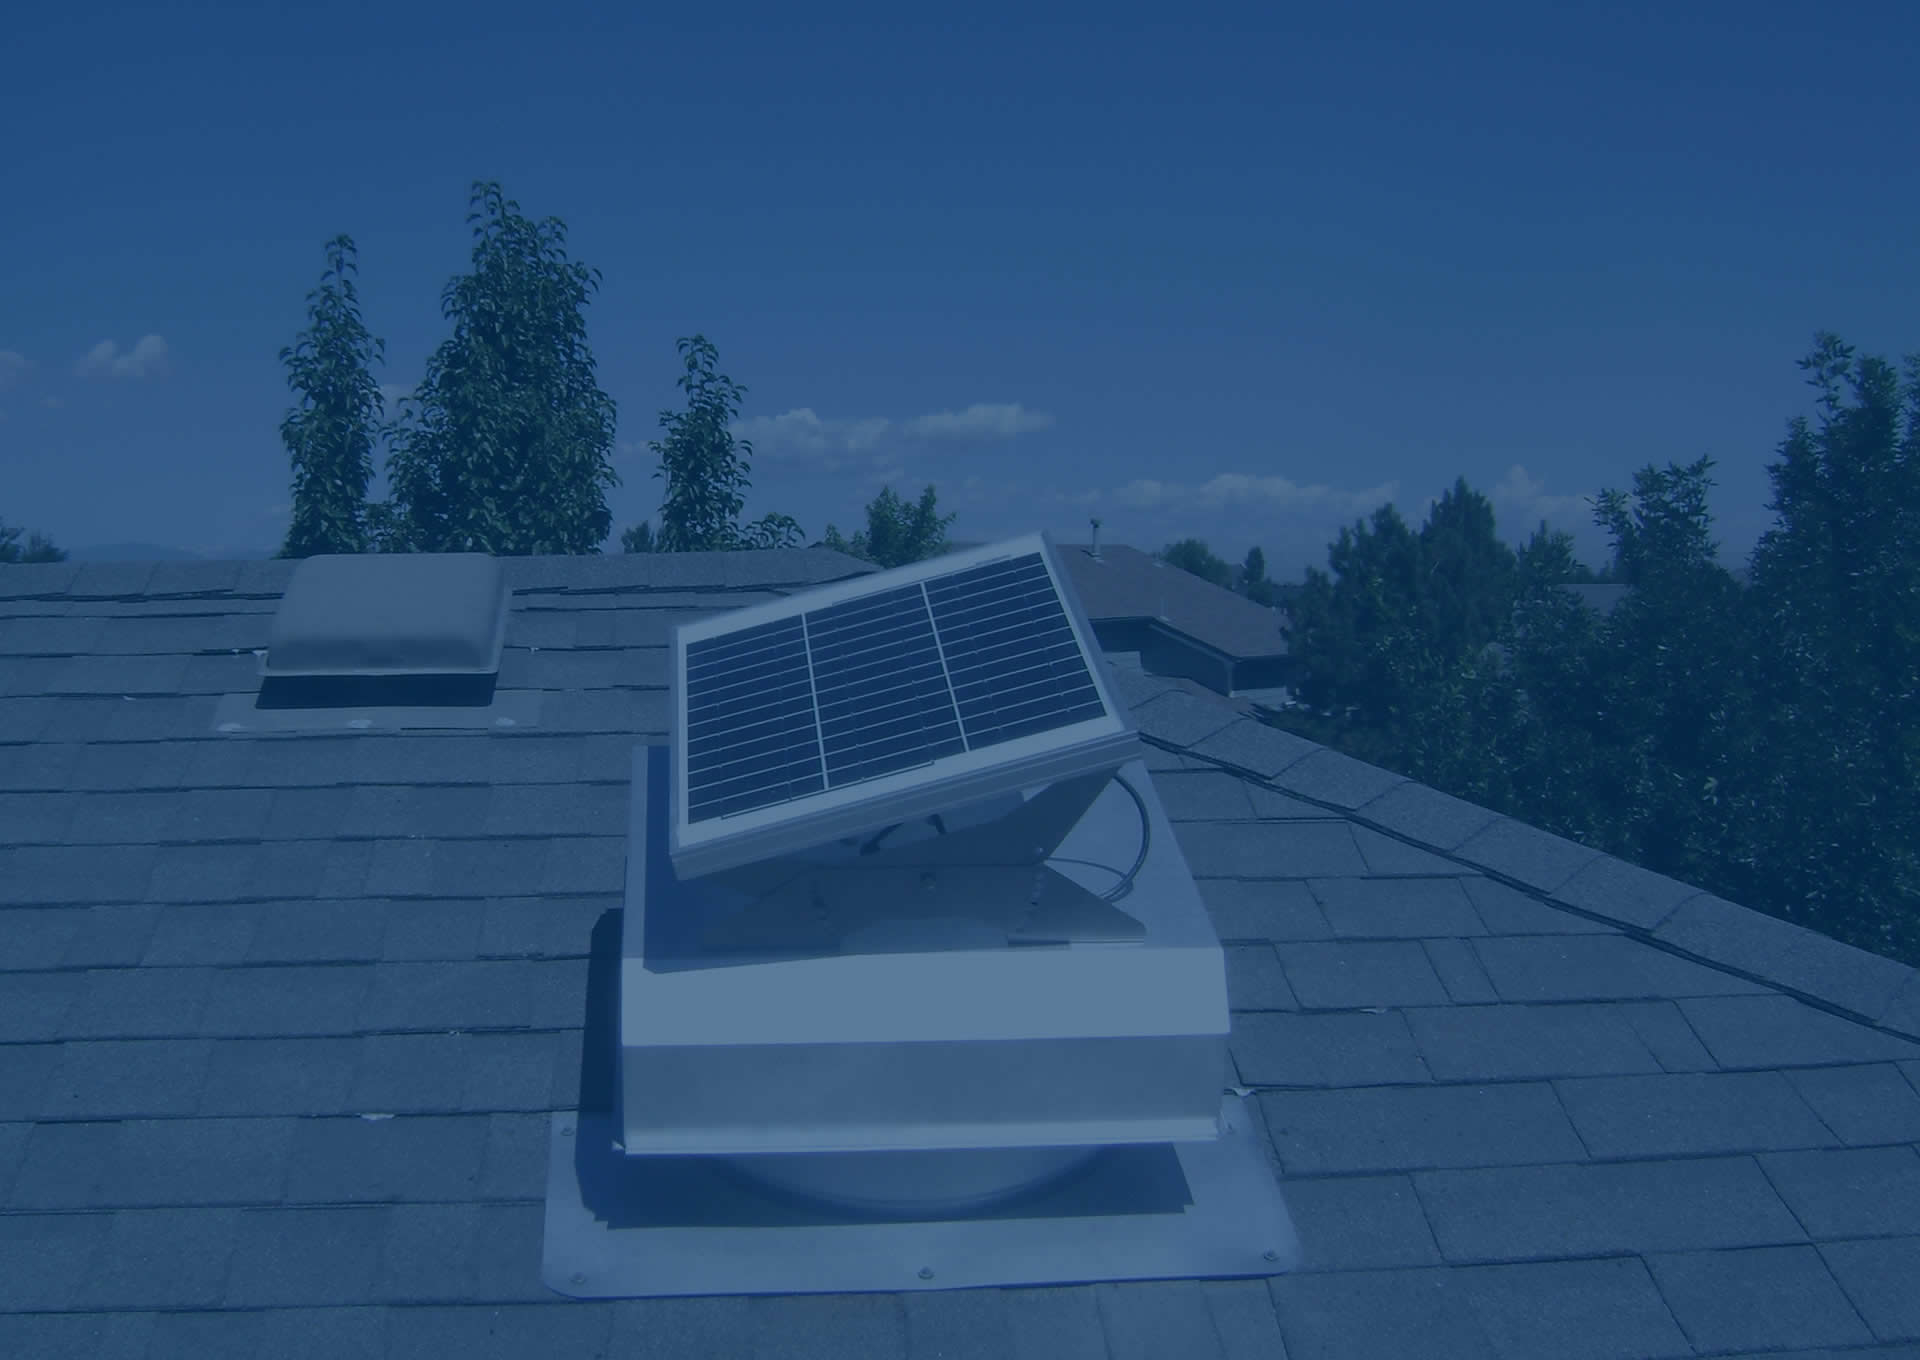 Attic Breeze Solar Attic Fans pertaining to size 1920 X 1360